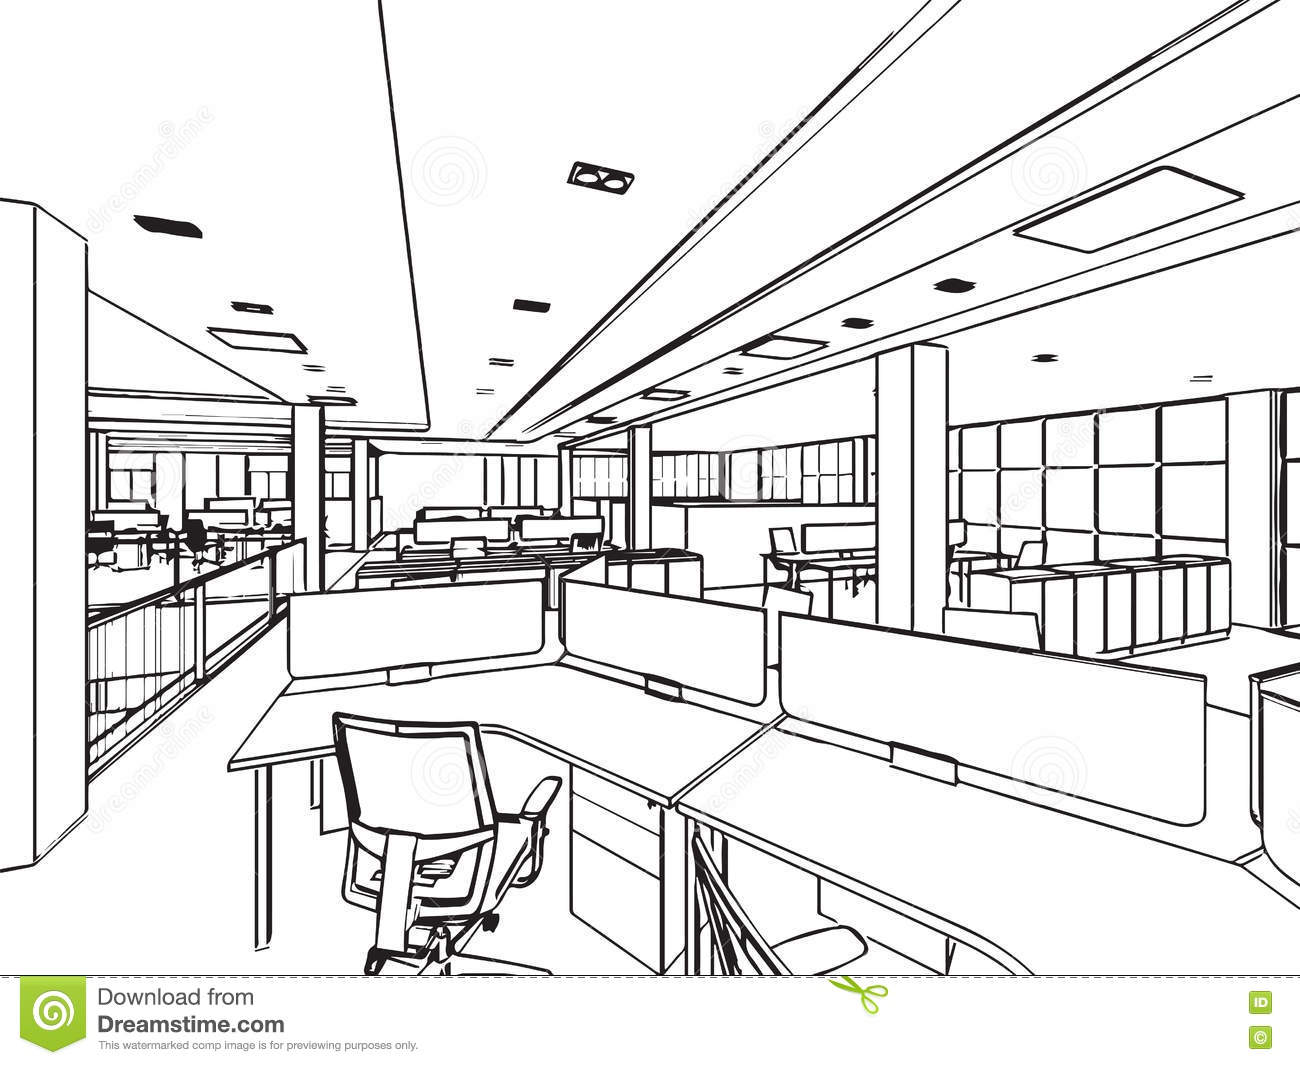 Interior Outline Sketch Drawing Perspective Of A Space